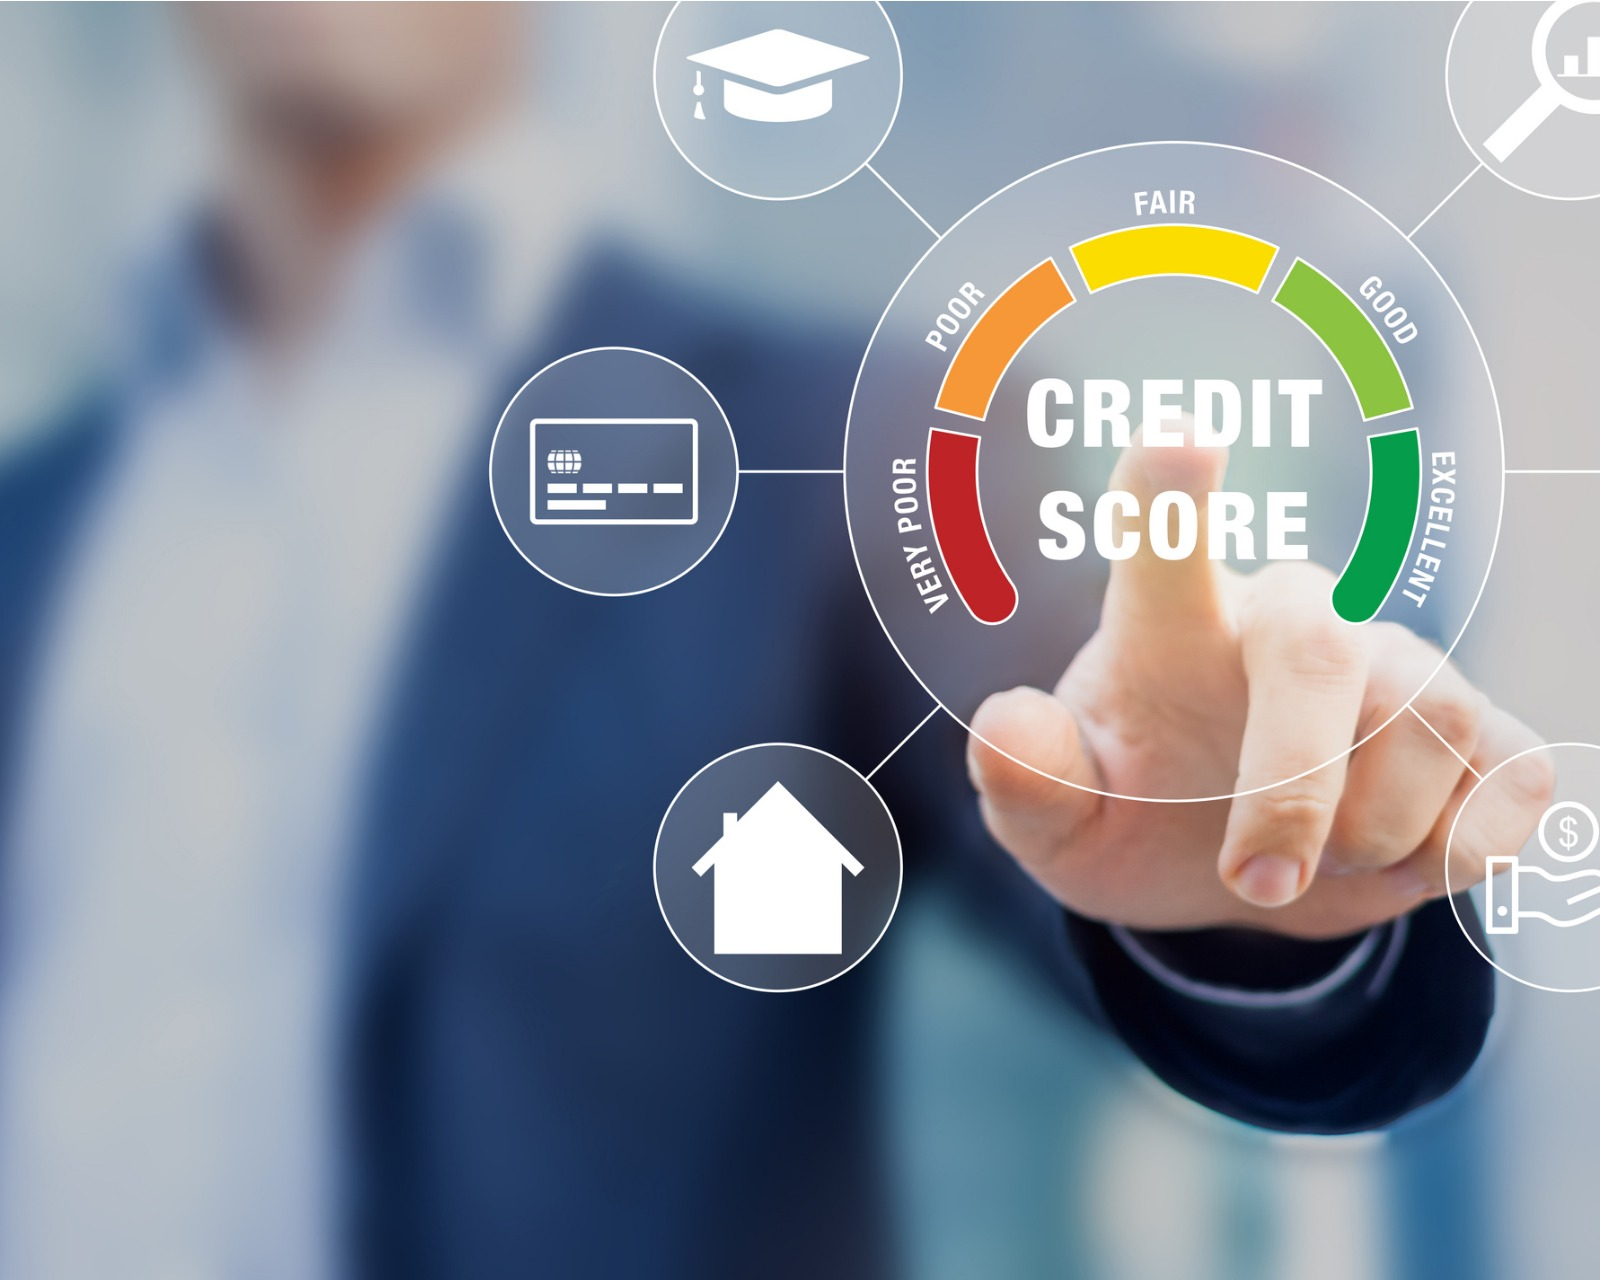 credit-score-rating-based-on-debt-reports-showing-creditworthiness-or-picture-id1200726951